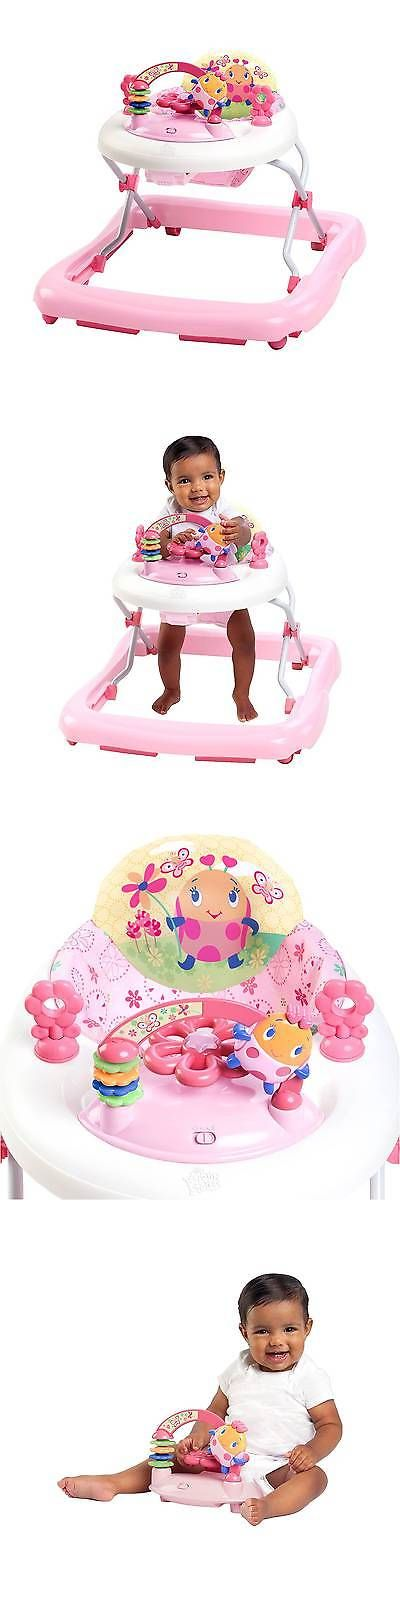 Baby Gear 100223: Bright Starts Pretty In Pink Walk-A-Bout Baby Walker - Juneberry Delight -> BUY IT NOW ONLY: $34.99 on eBay!